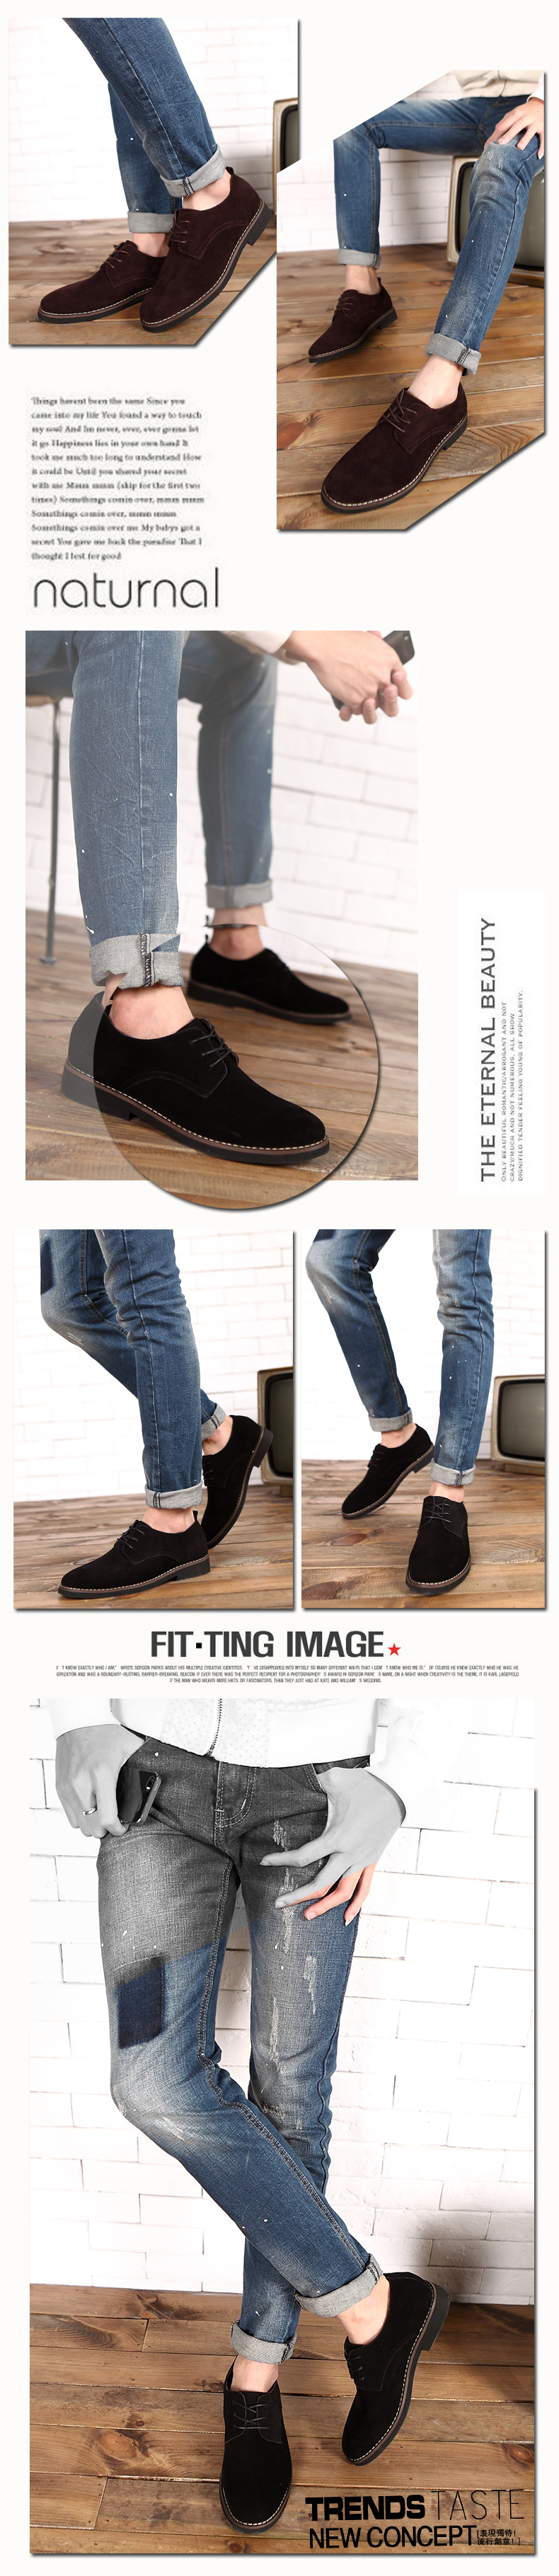 HTB1fAEXfYvpK1RjSZFqq6AXUVXaP ROXDIA plus size 39-48 genuine leather men casual flats waterproof dress oxford man shoes lace up for work male loafers RXM098